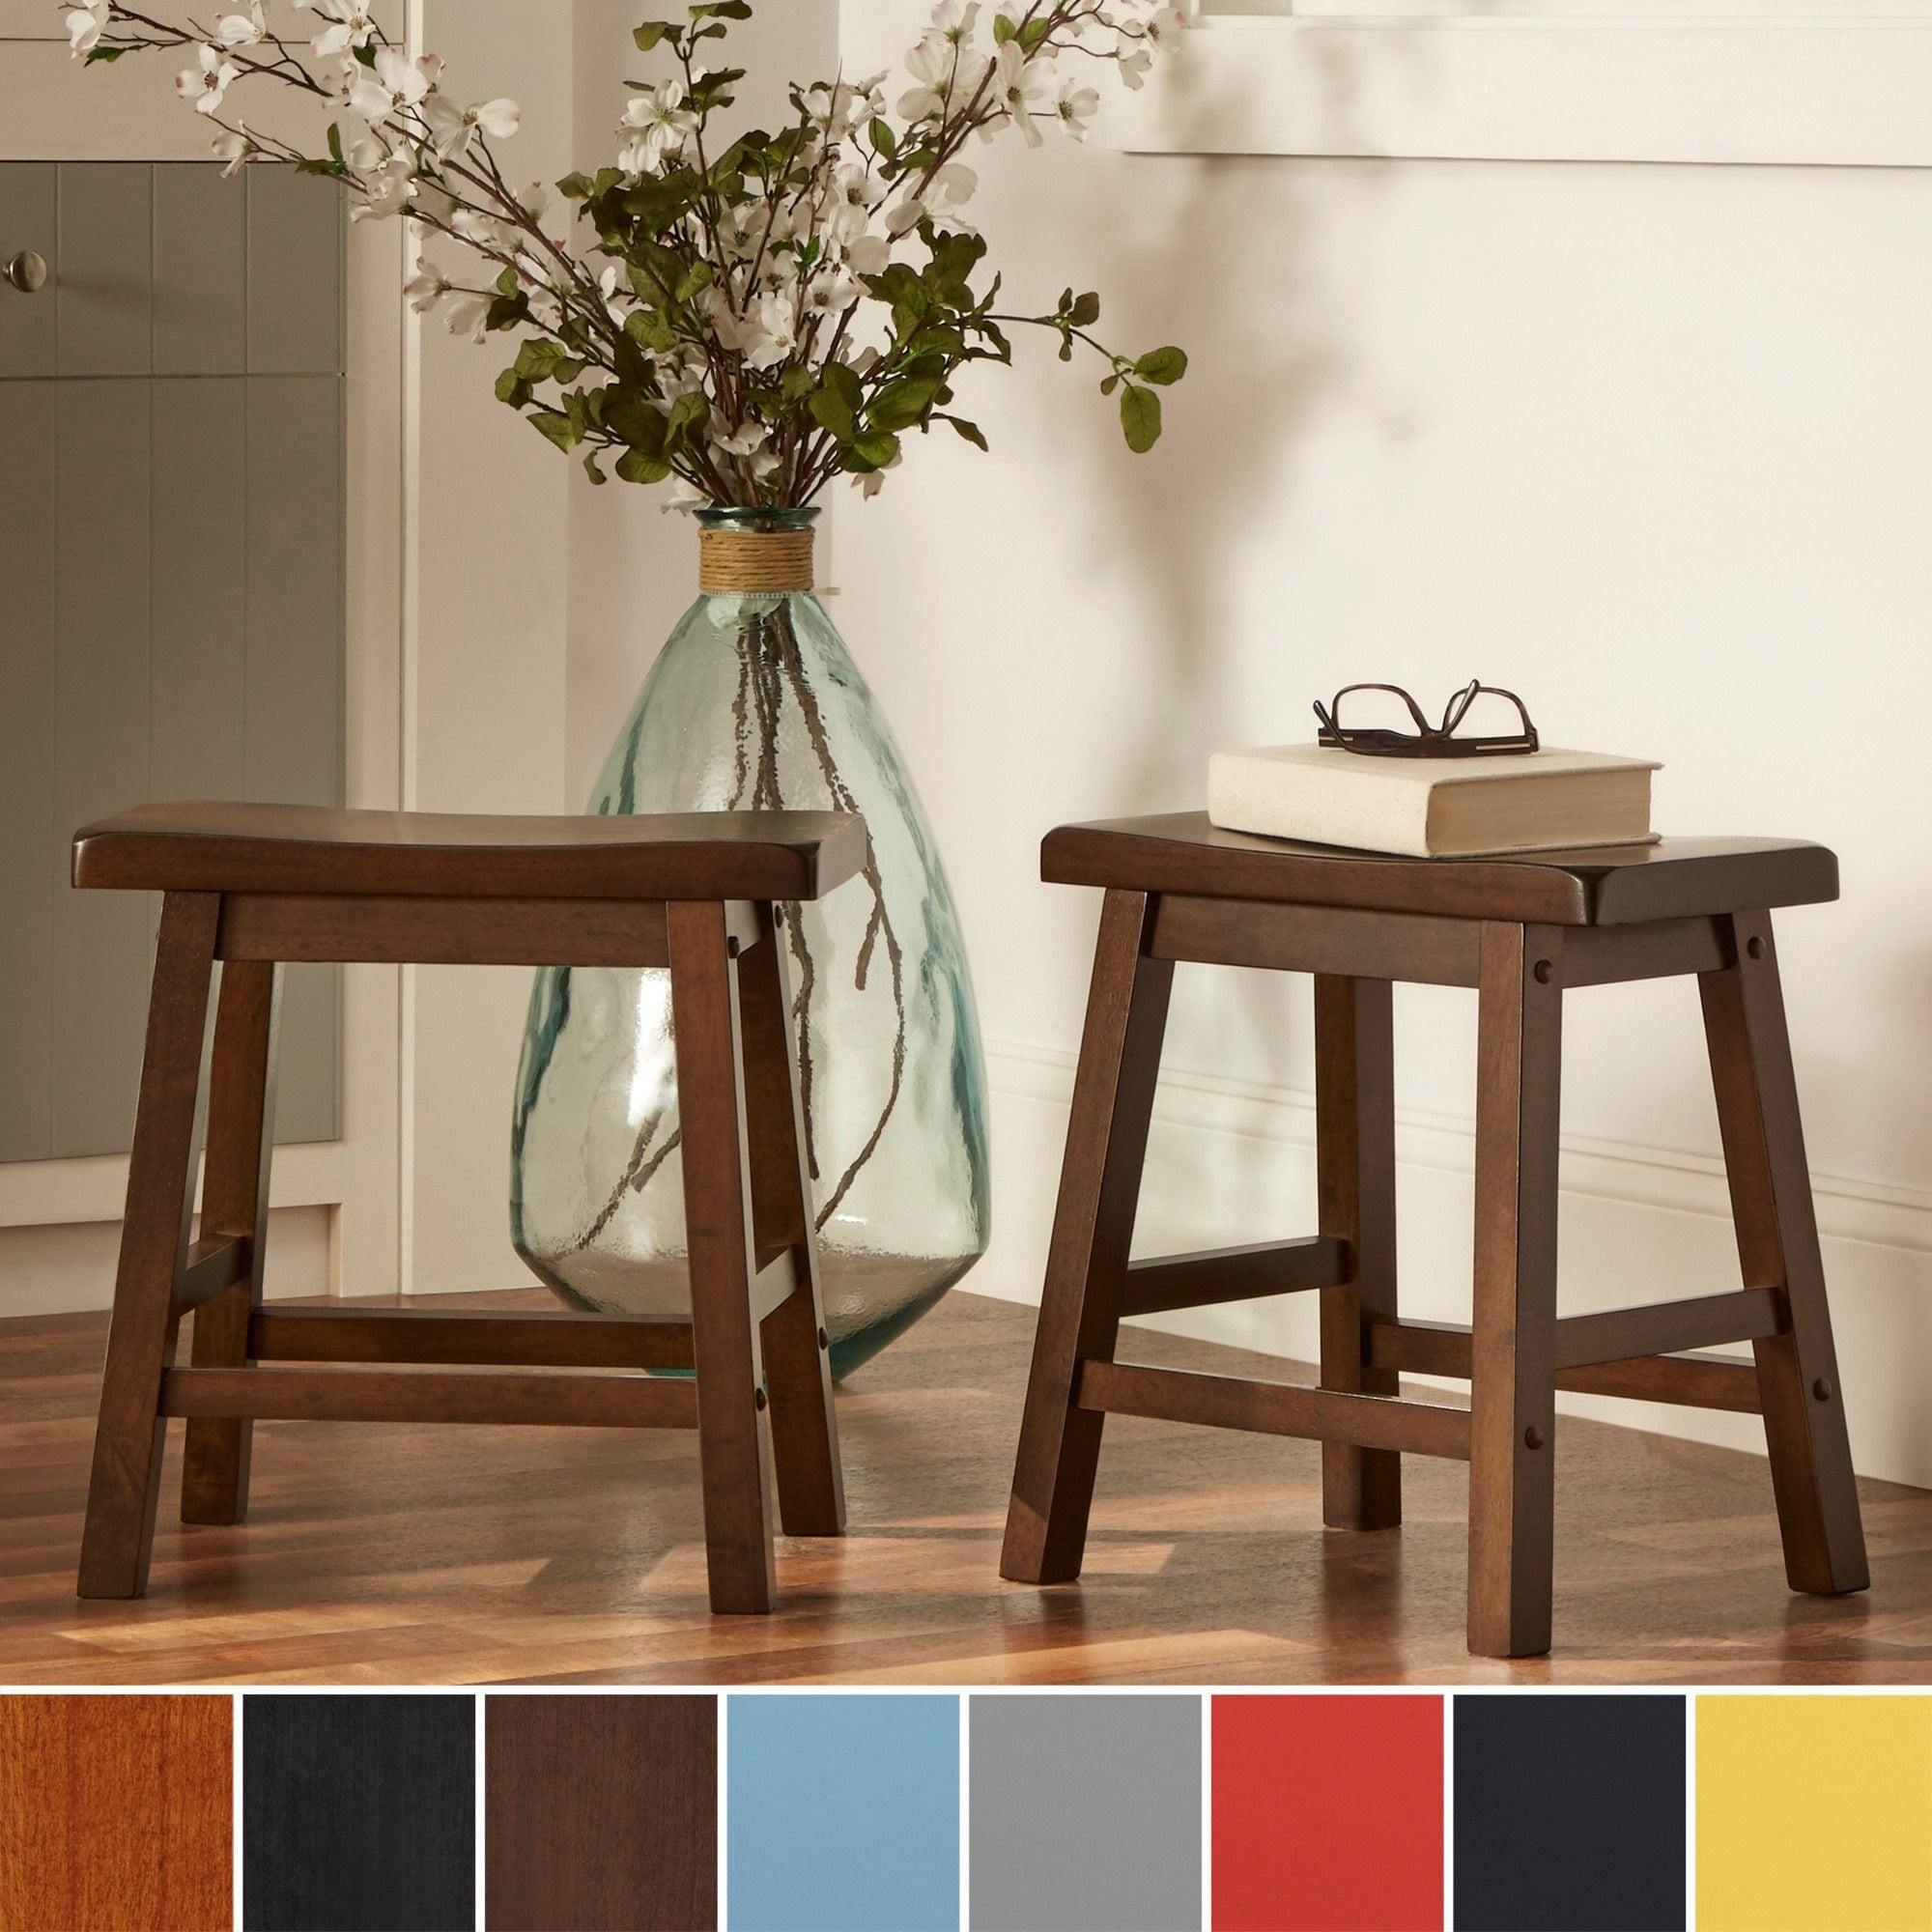 Strange Details About Backless Stool 18 In Wood 2 Piece 4 Legs Salvador Saddle Back Counter Bar Stools Machost Co Dining Chair Design Ideas Machostcouk